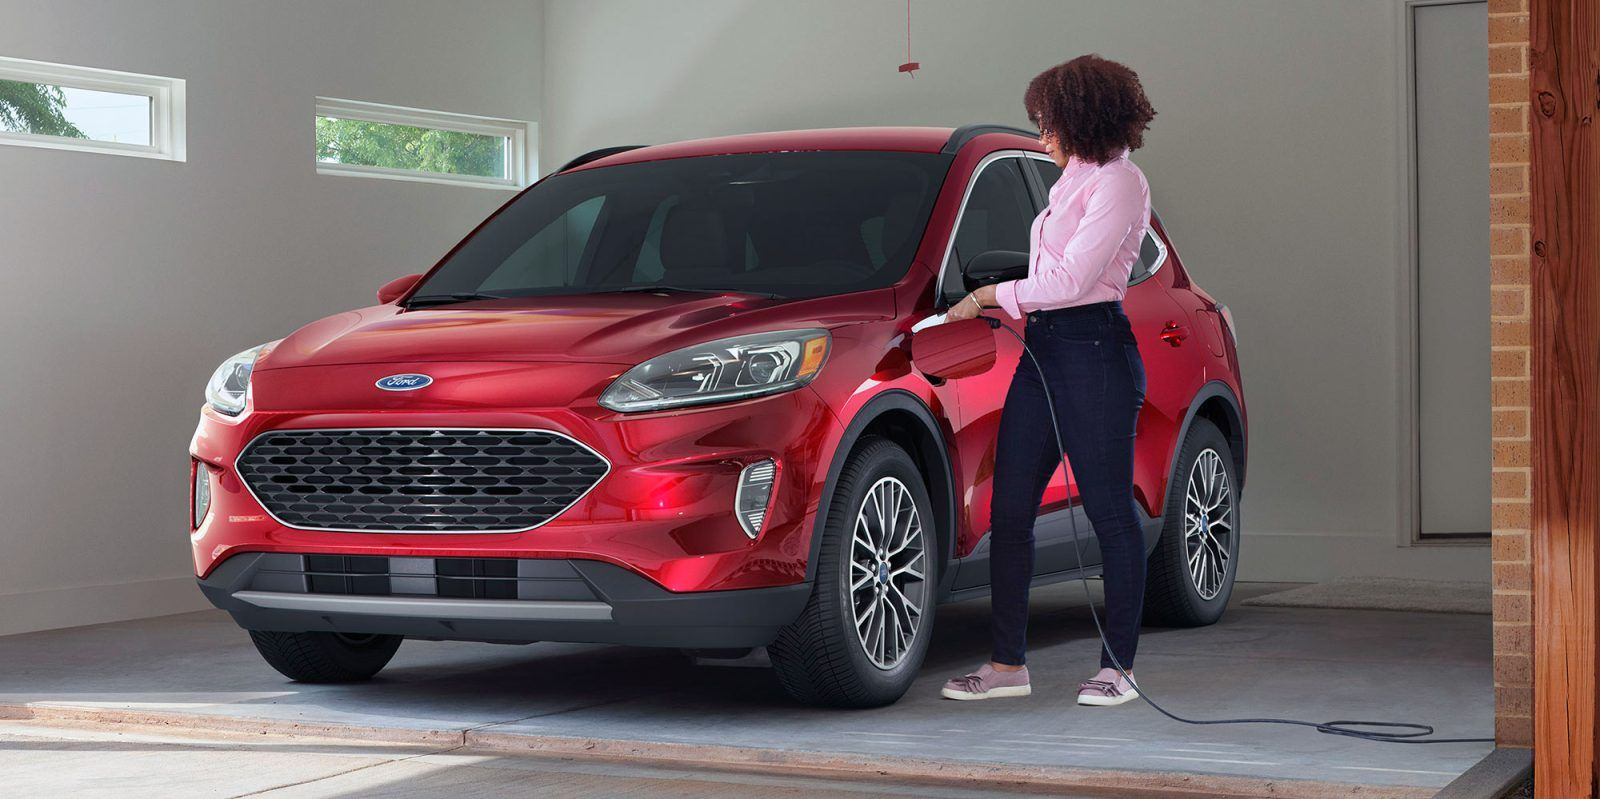 Ford And Toyota Are Simultaneously This Summer Introducing Plug In Hybrid Options Of Their Popular Crossover Suvs The Ford Escape And Ra In 2020 Ford Escape Rav4 Ford